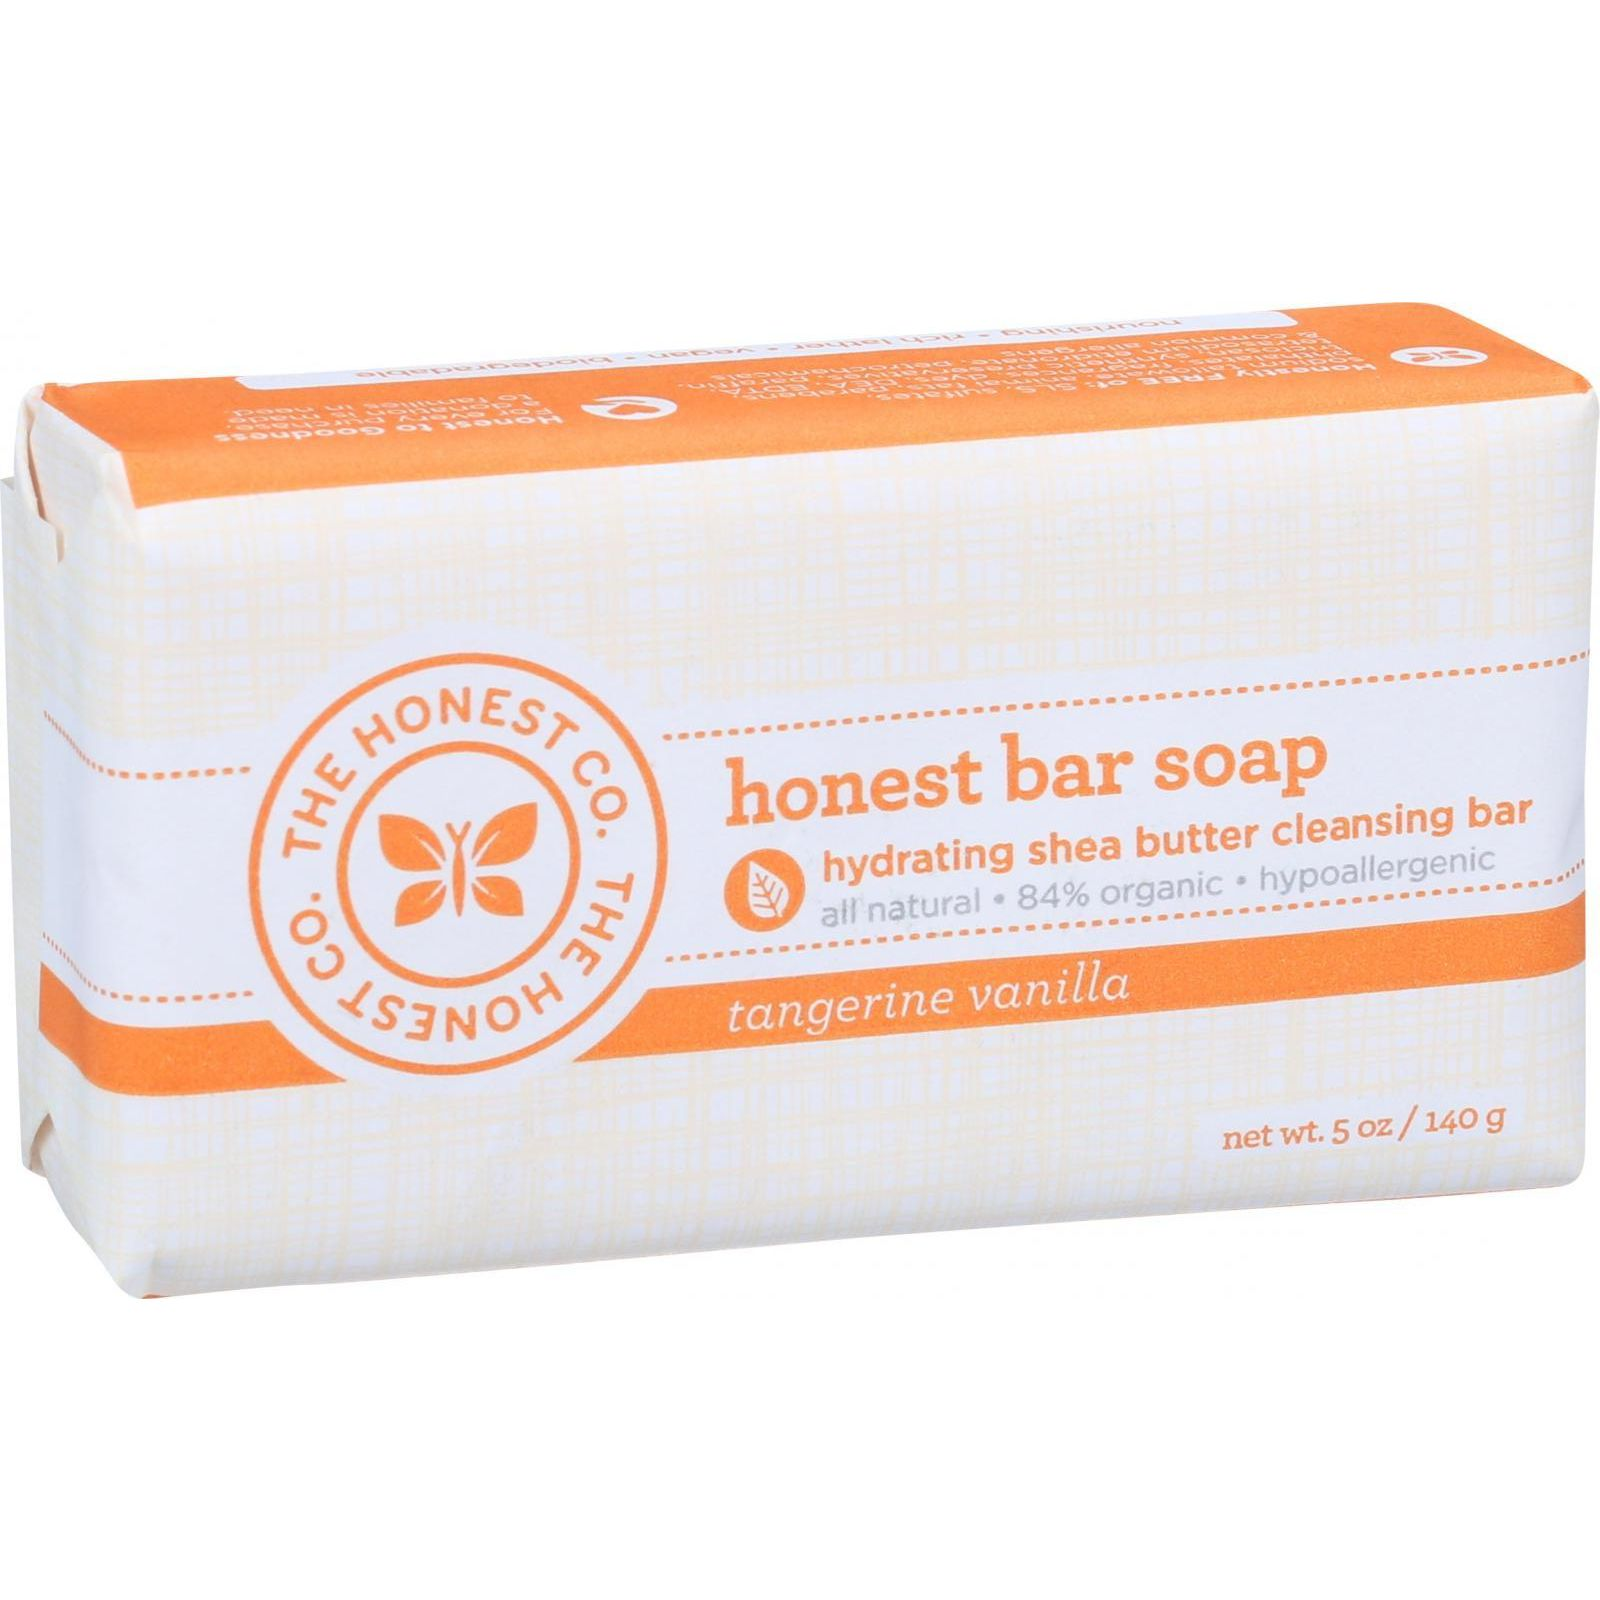 The Honest Company Honest Bar Soap - Tangerine Vanilla - 5 oz